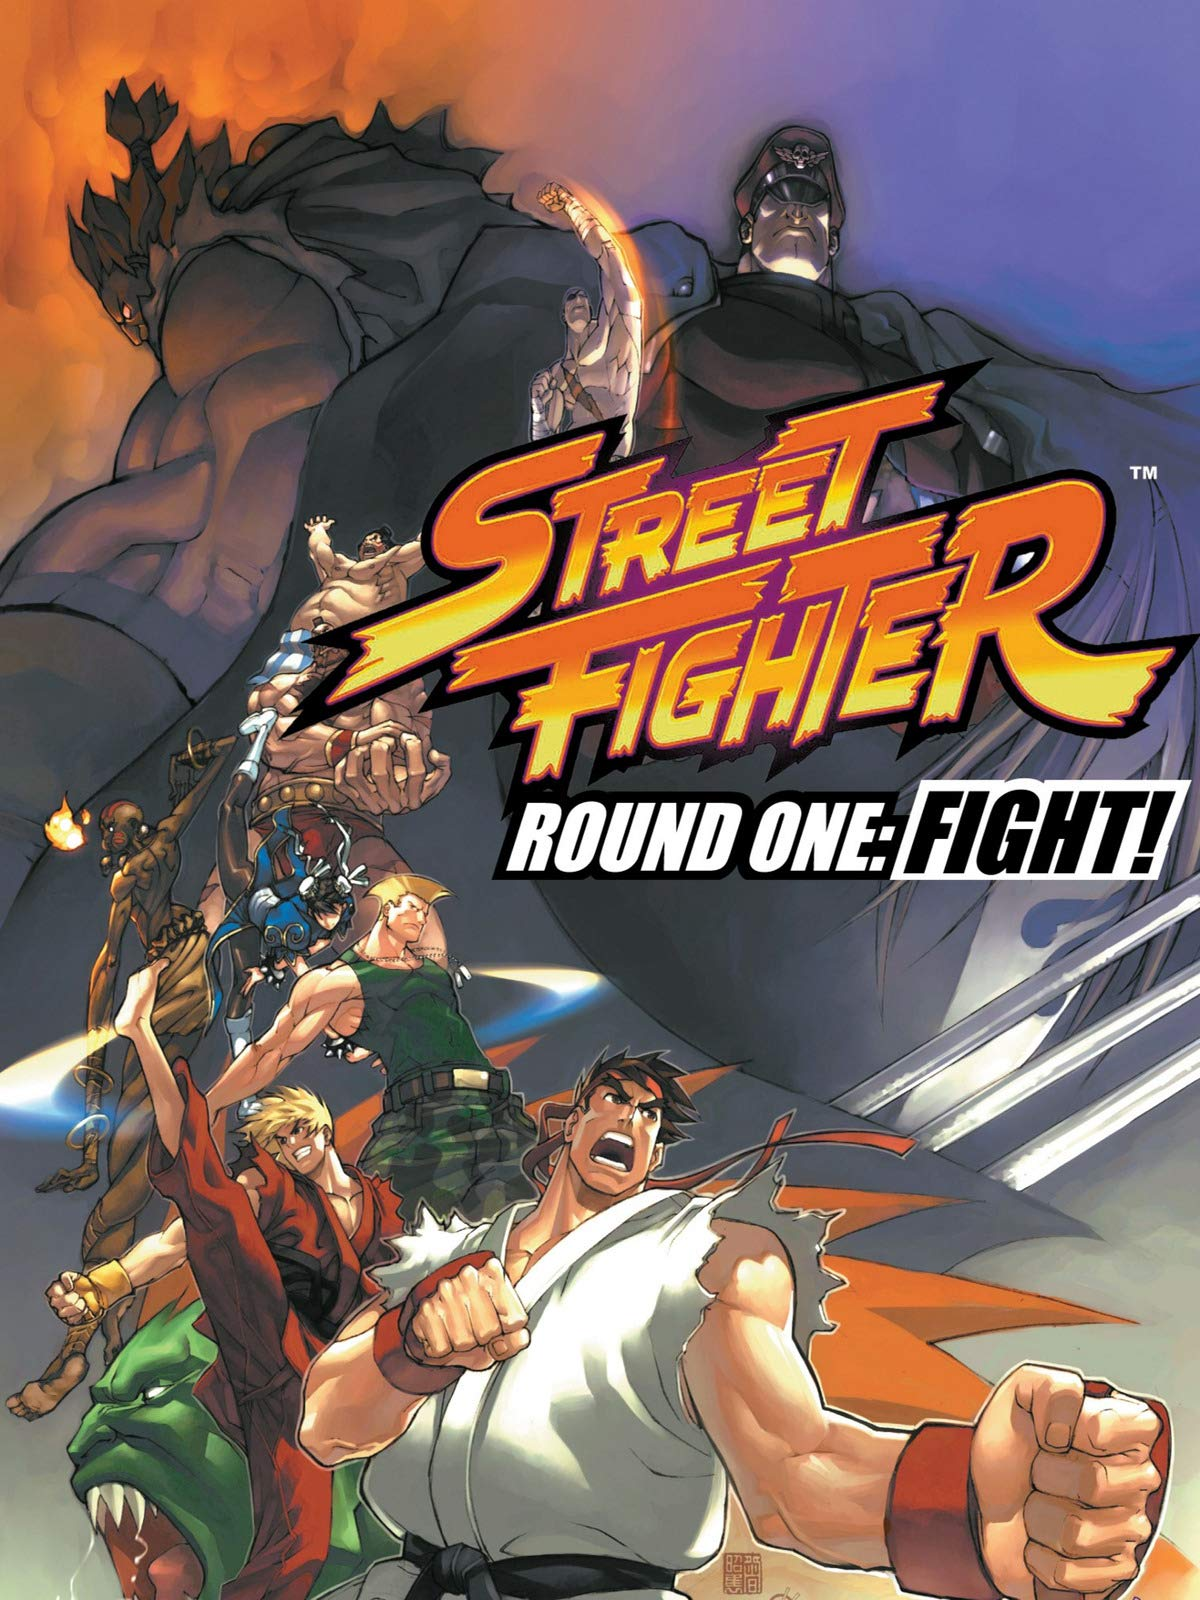 Street Fighter: Round One - FIGHT! on Amazon Prime Video UK